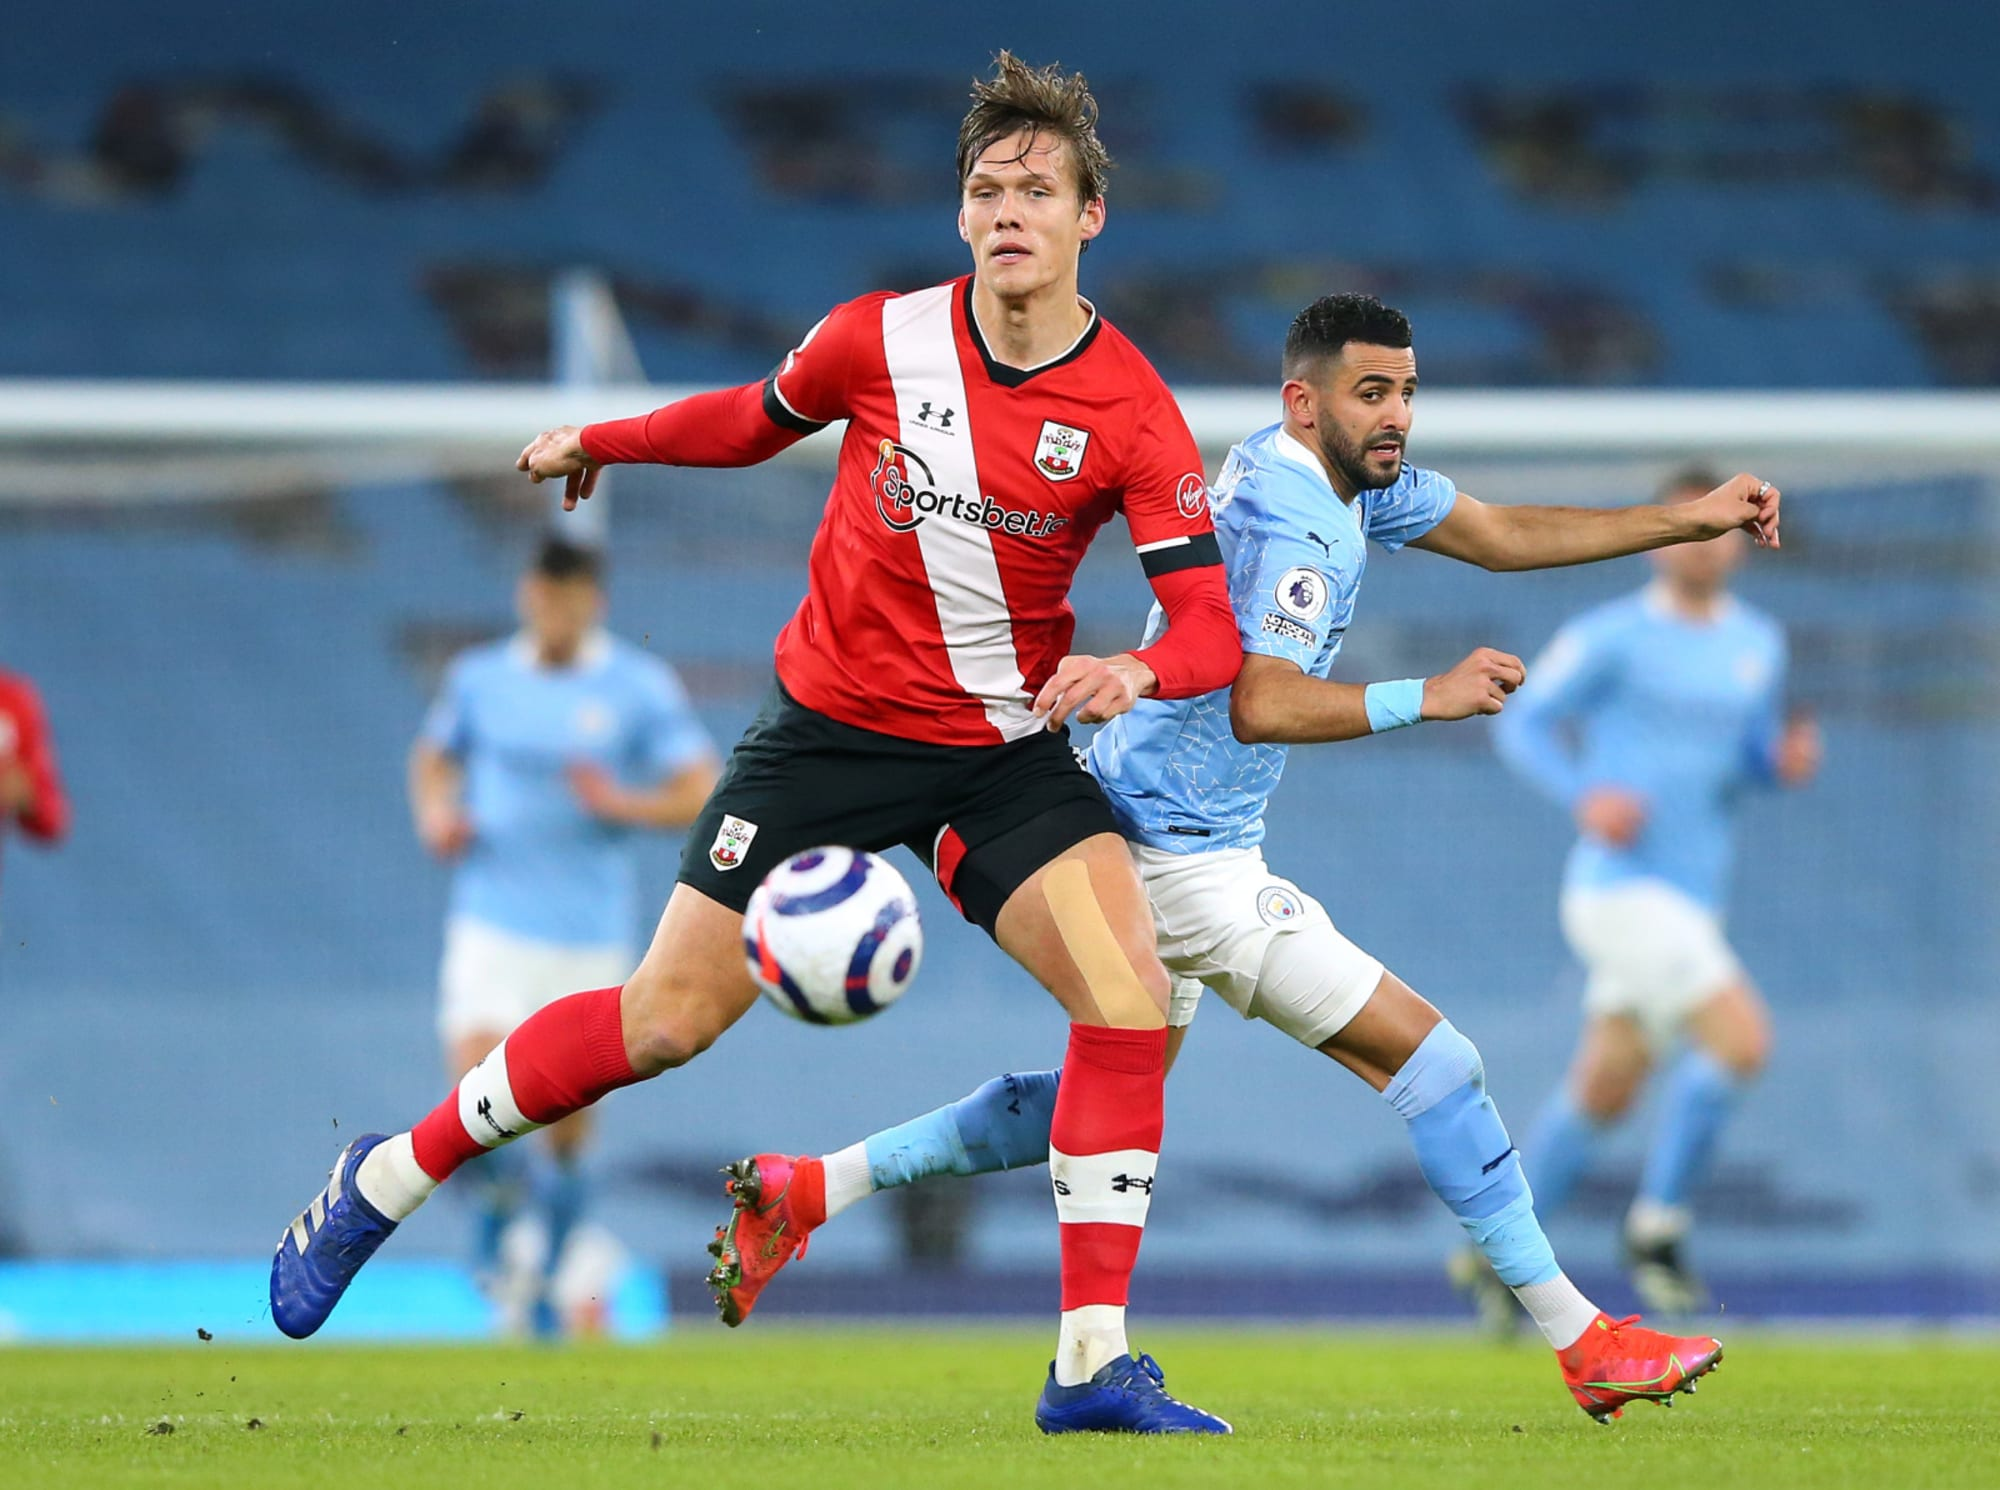 Southampton: Conflicting Reports on Vestergaard's Future